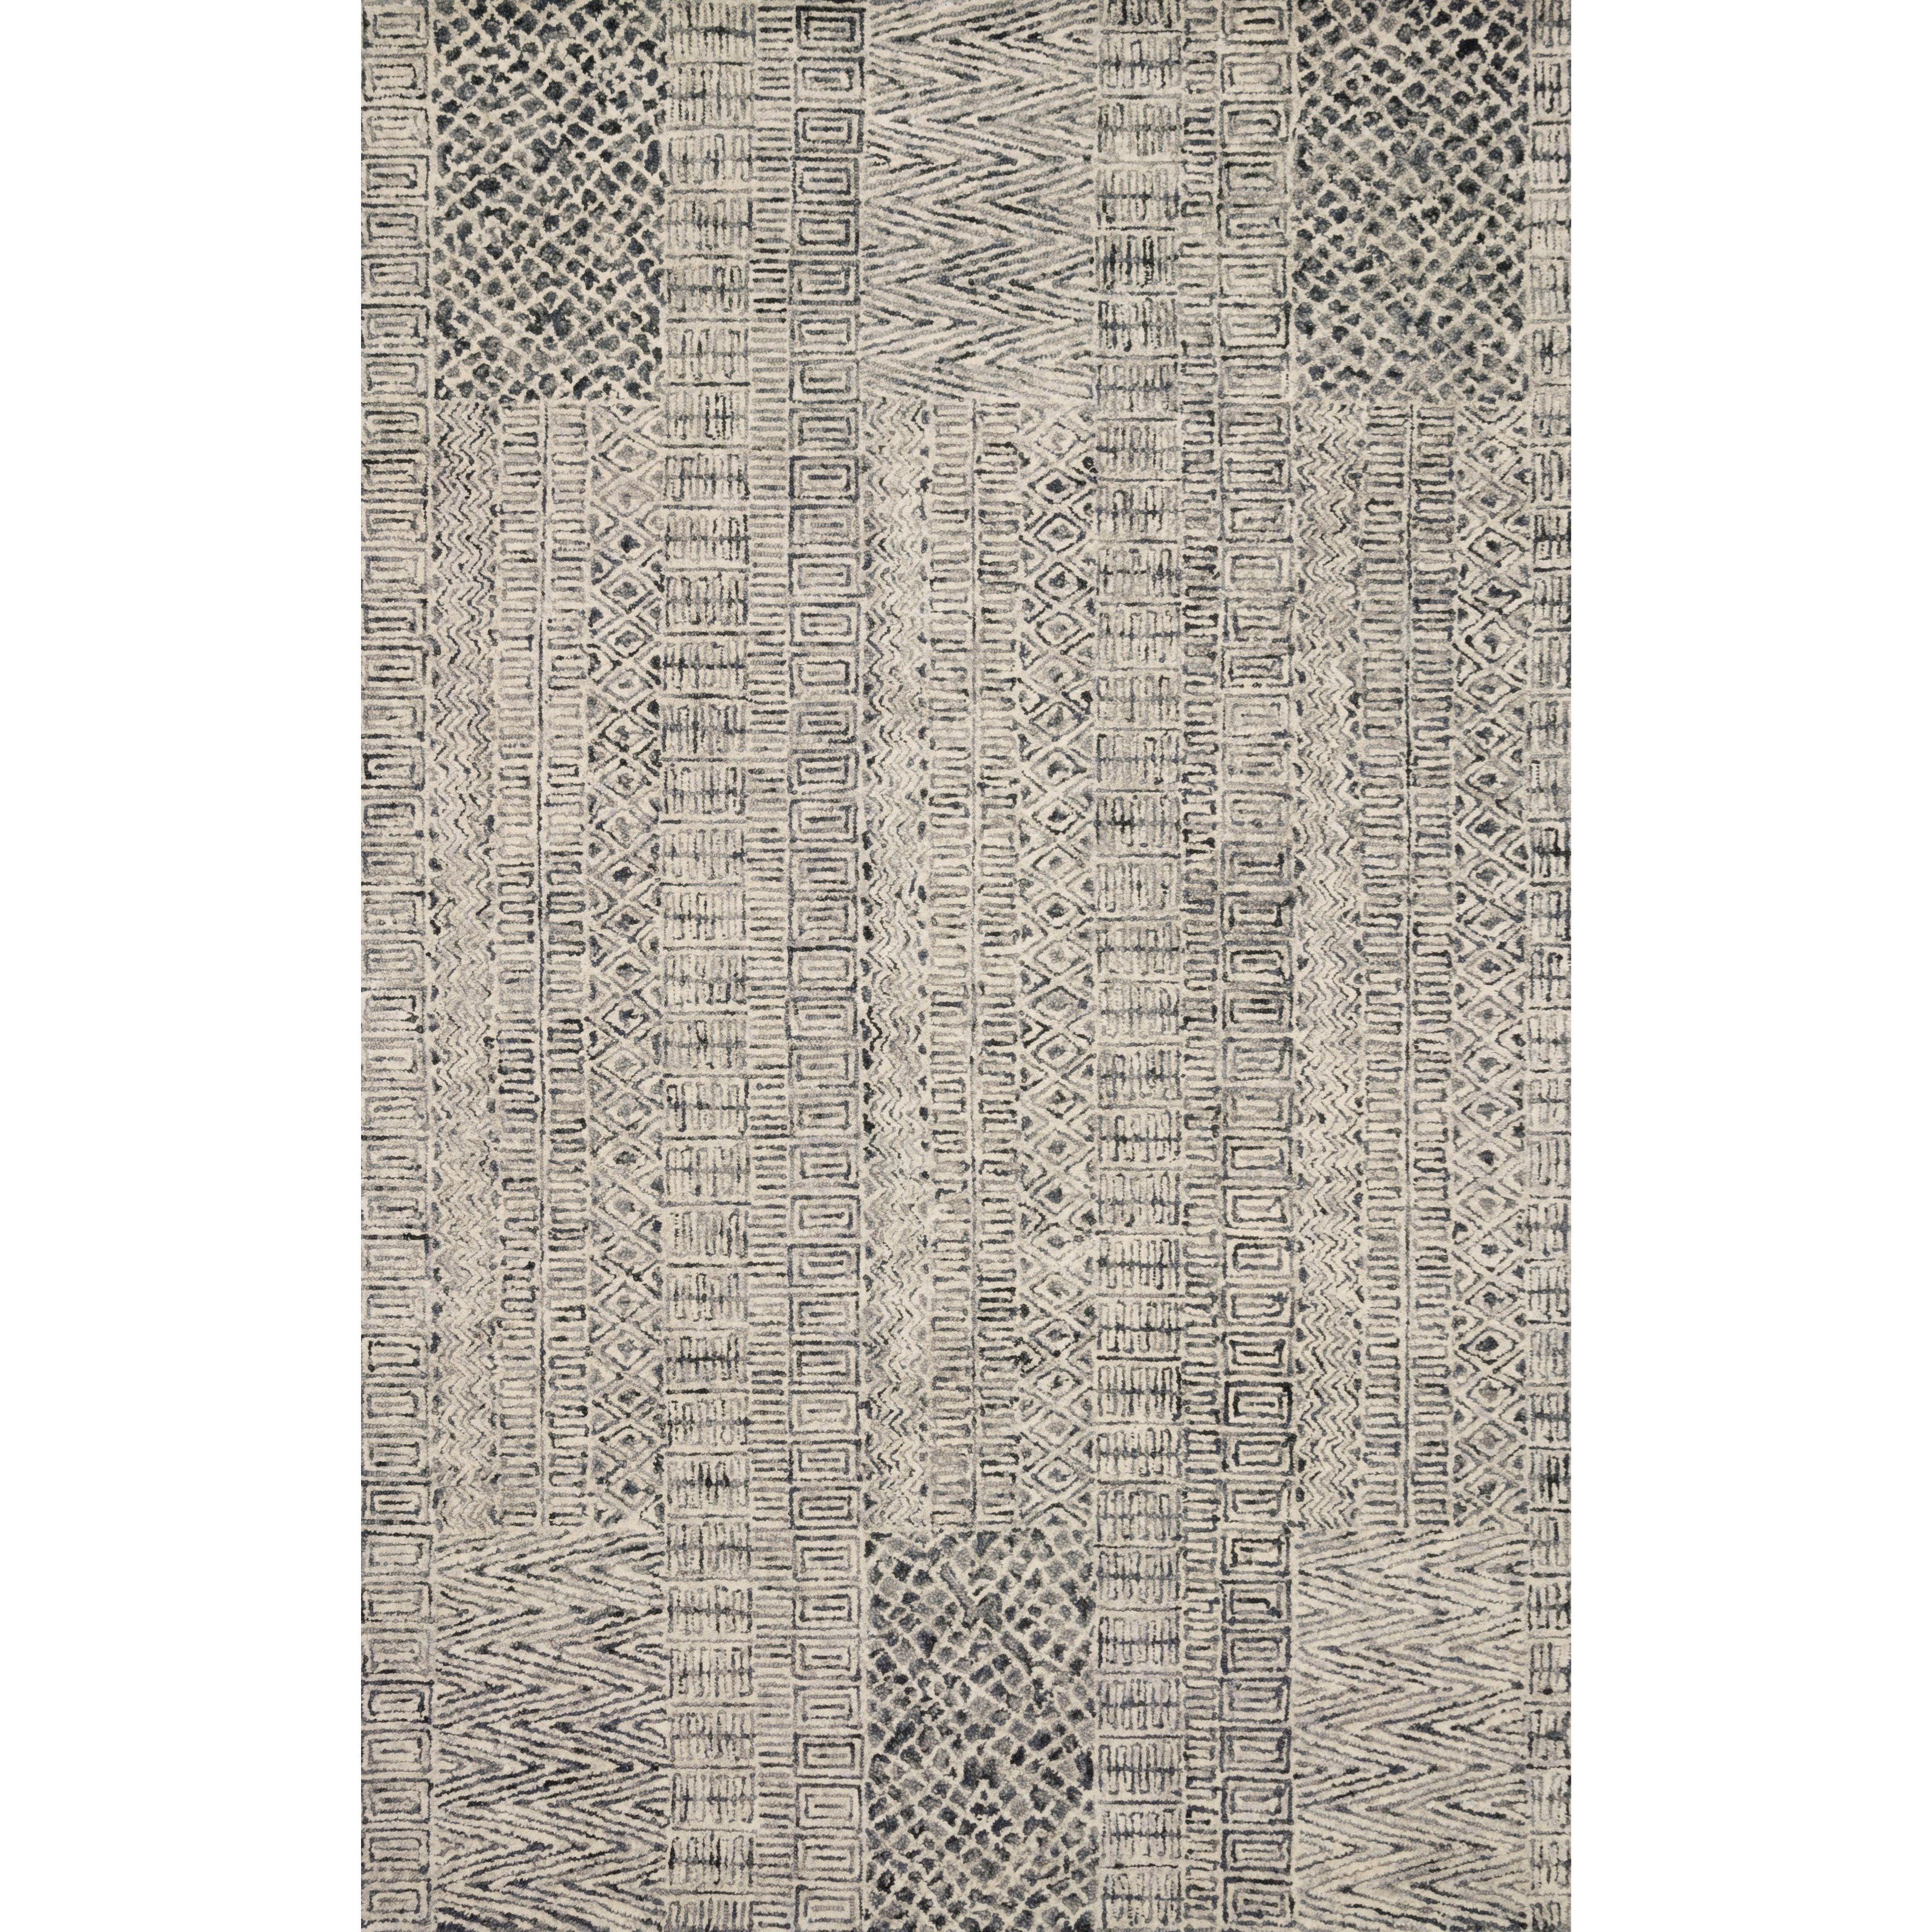 "Peregrine 2'6"" x 9'9"" Charcoal Rug by Loloi Rugs at Story & Lee Furniture"